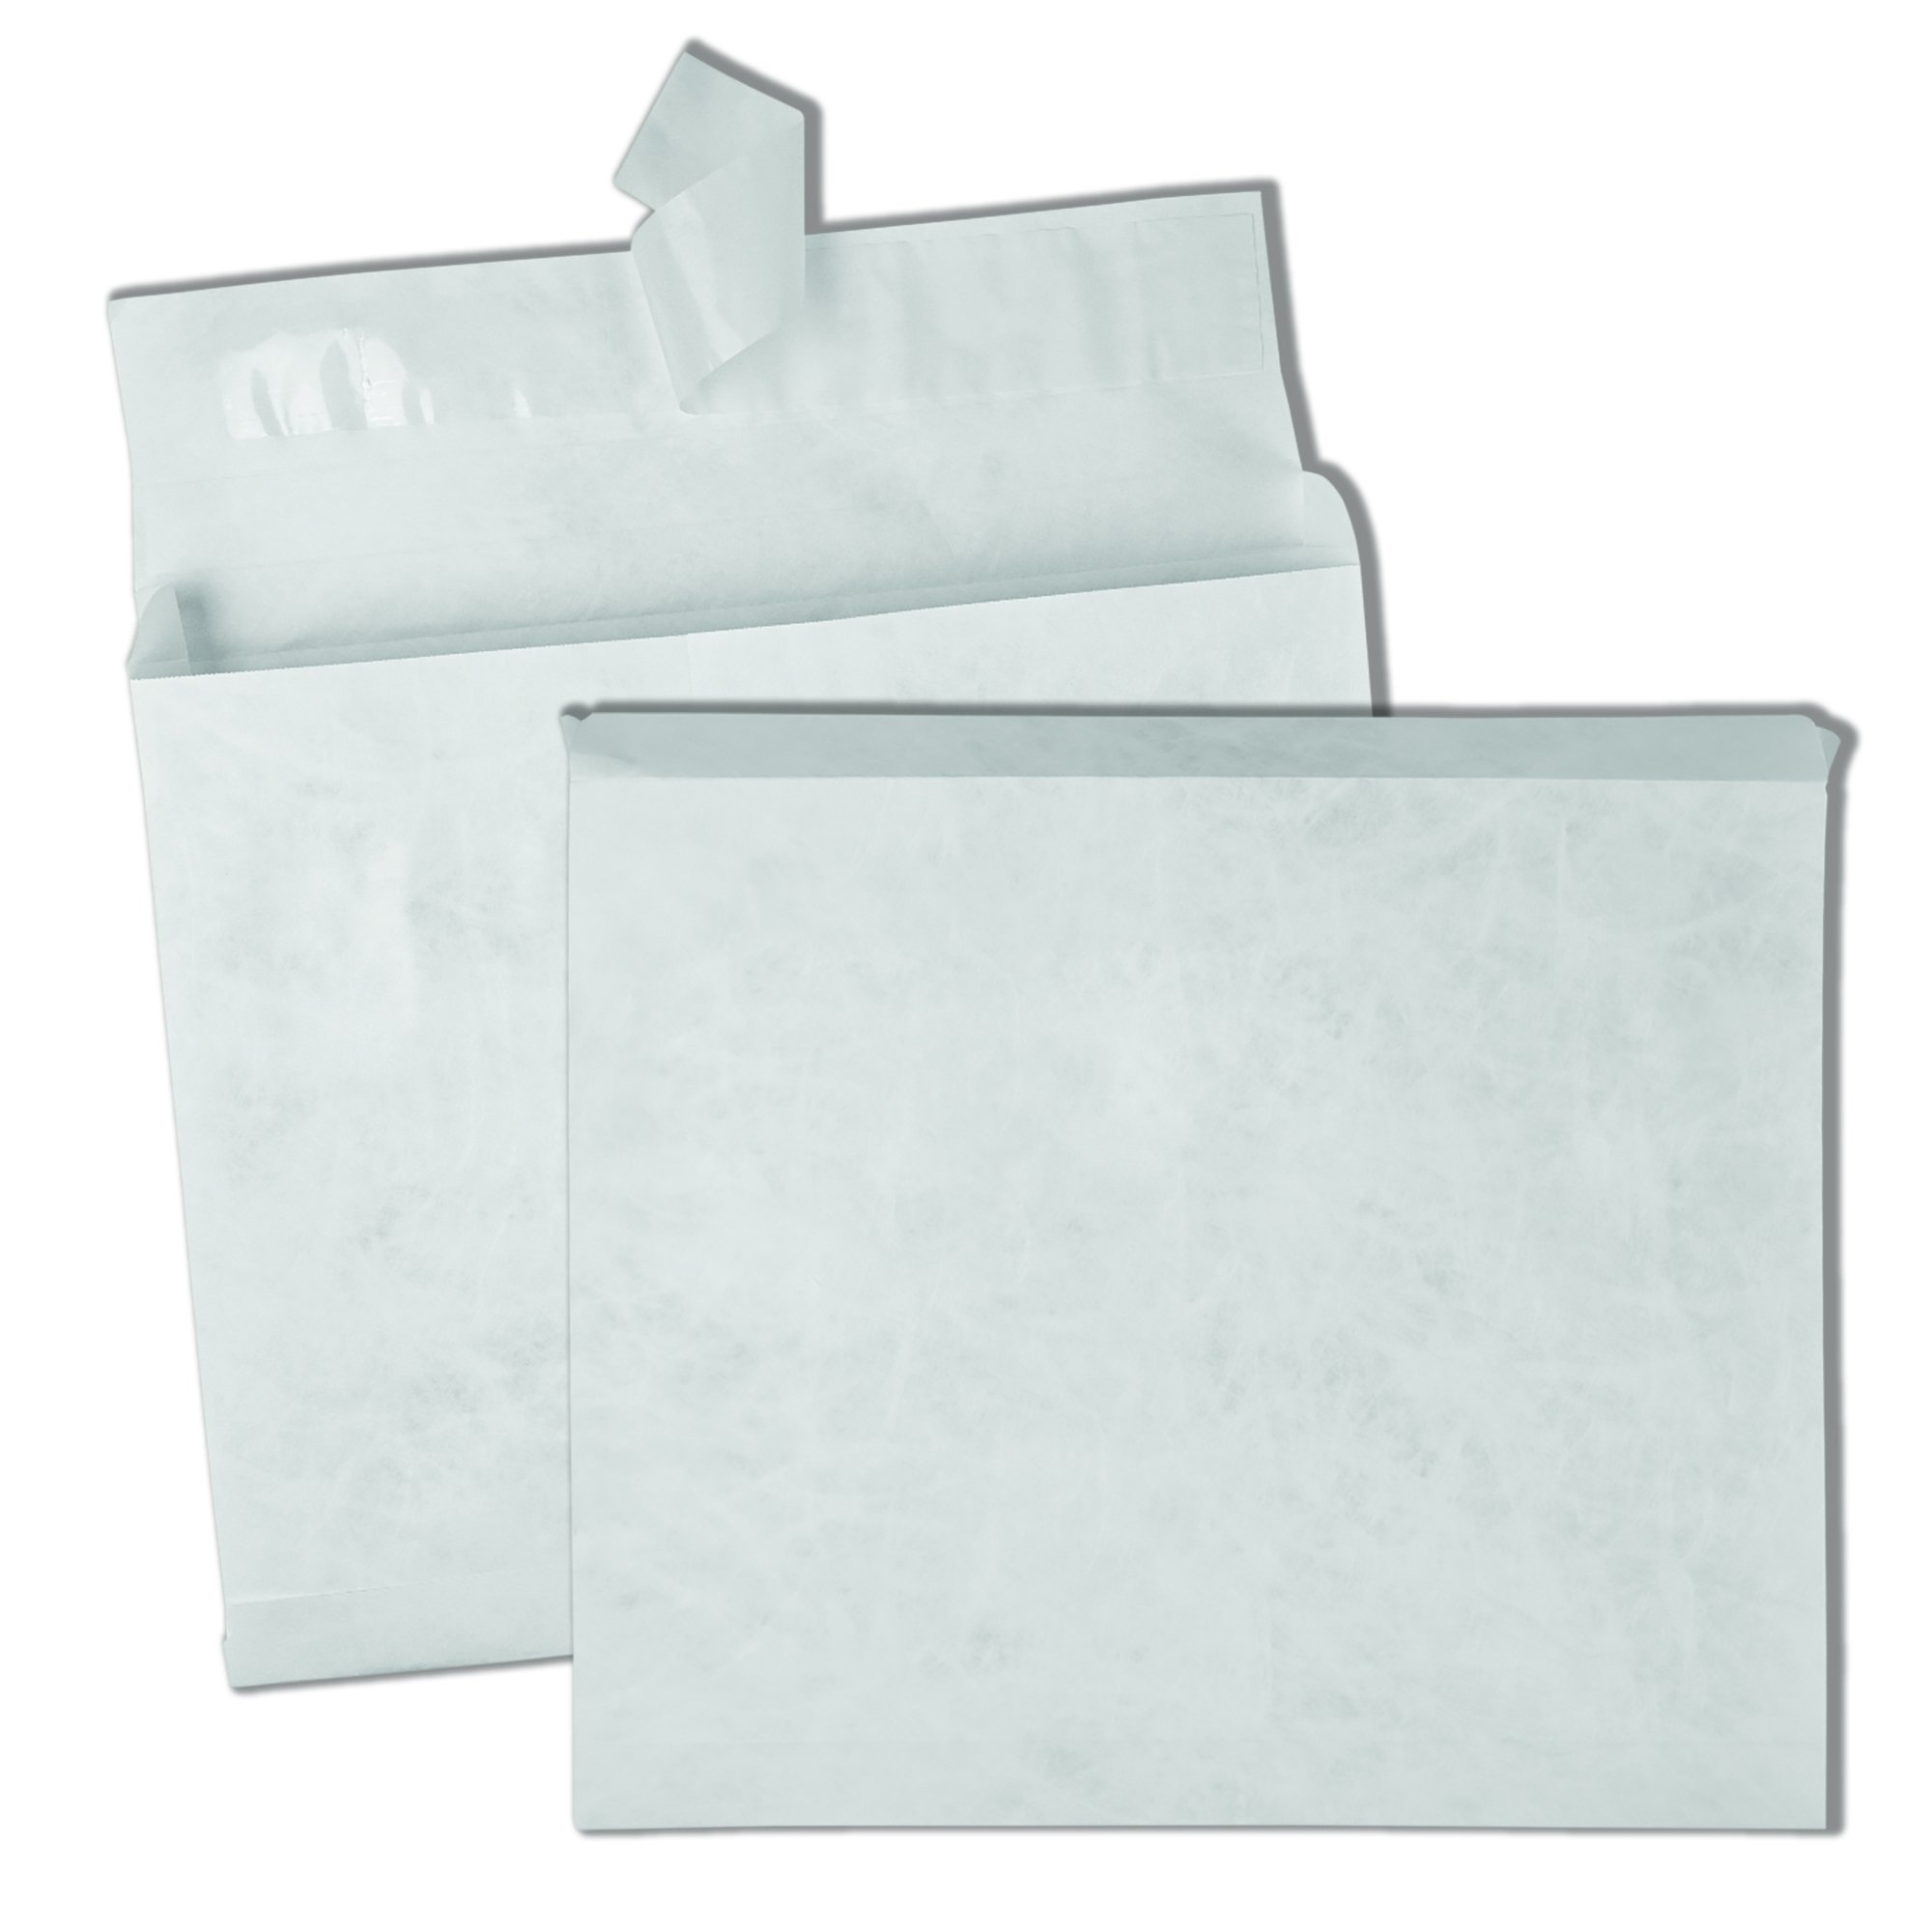 Survivor R4430 Tyvek Expansion Mailer, 10 x 13 x 2, White, 18lb (Case of 100)